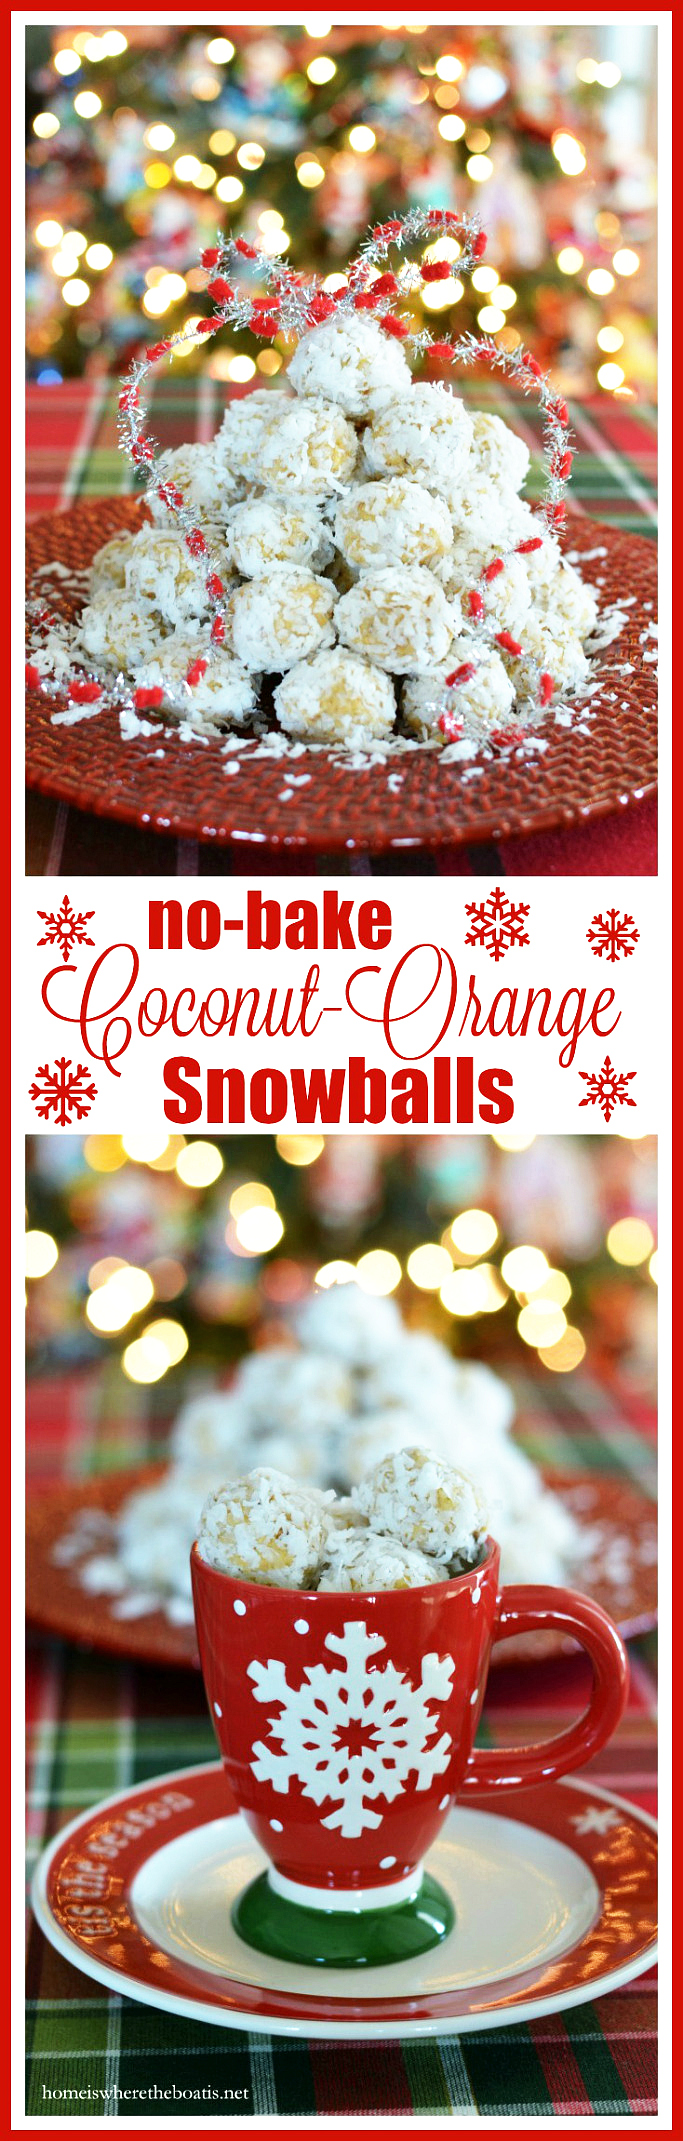 No-Bake Coconut Orange Snowballs! An easy no bake treat! | homeiswheretheboatis.net #Christmas #cookies #nobake #recipes